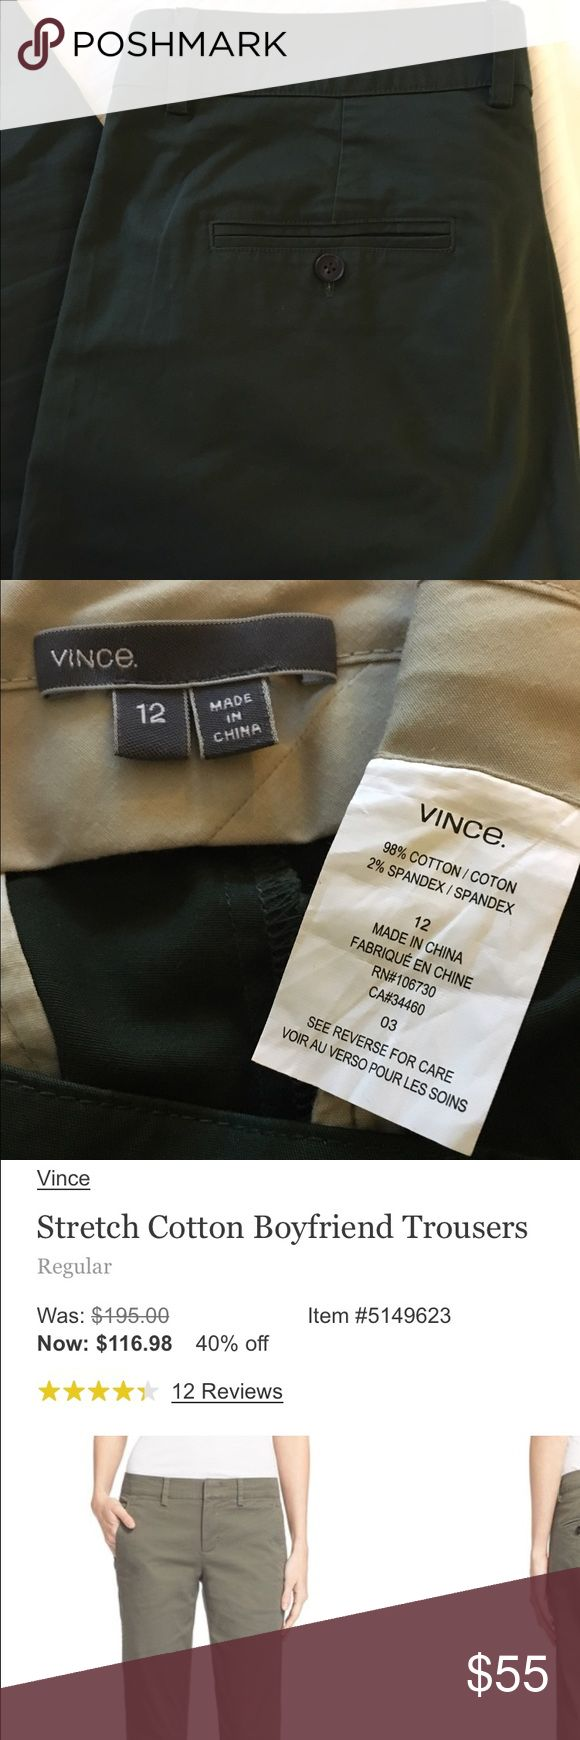 """Vince dark green pants size 12 Vince stretch cotton trousers in dark forest green. Purchased last Fall and now they're too big 😝. EUC, worn a few times, no flaws. Paid full price at Nordstrom. Stock photo an example of fit, color for sale is dark green. 17 3/4"""" waist, 20"""" hip, 10"""" rise, 29 1/2 inseam, 7"""" leg opening. Vince Pants Straight Leg"""